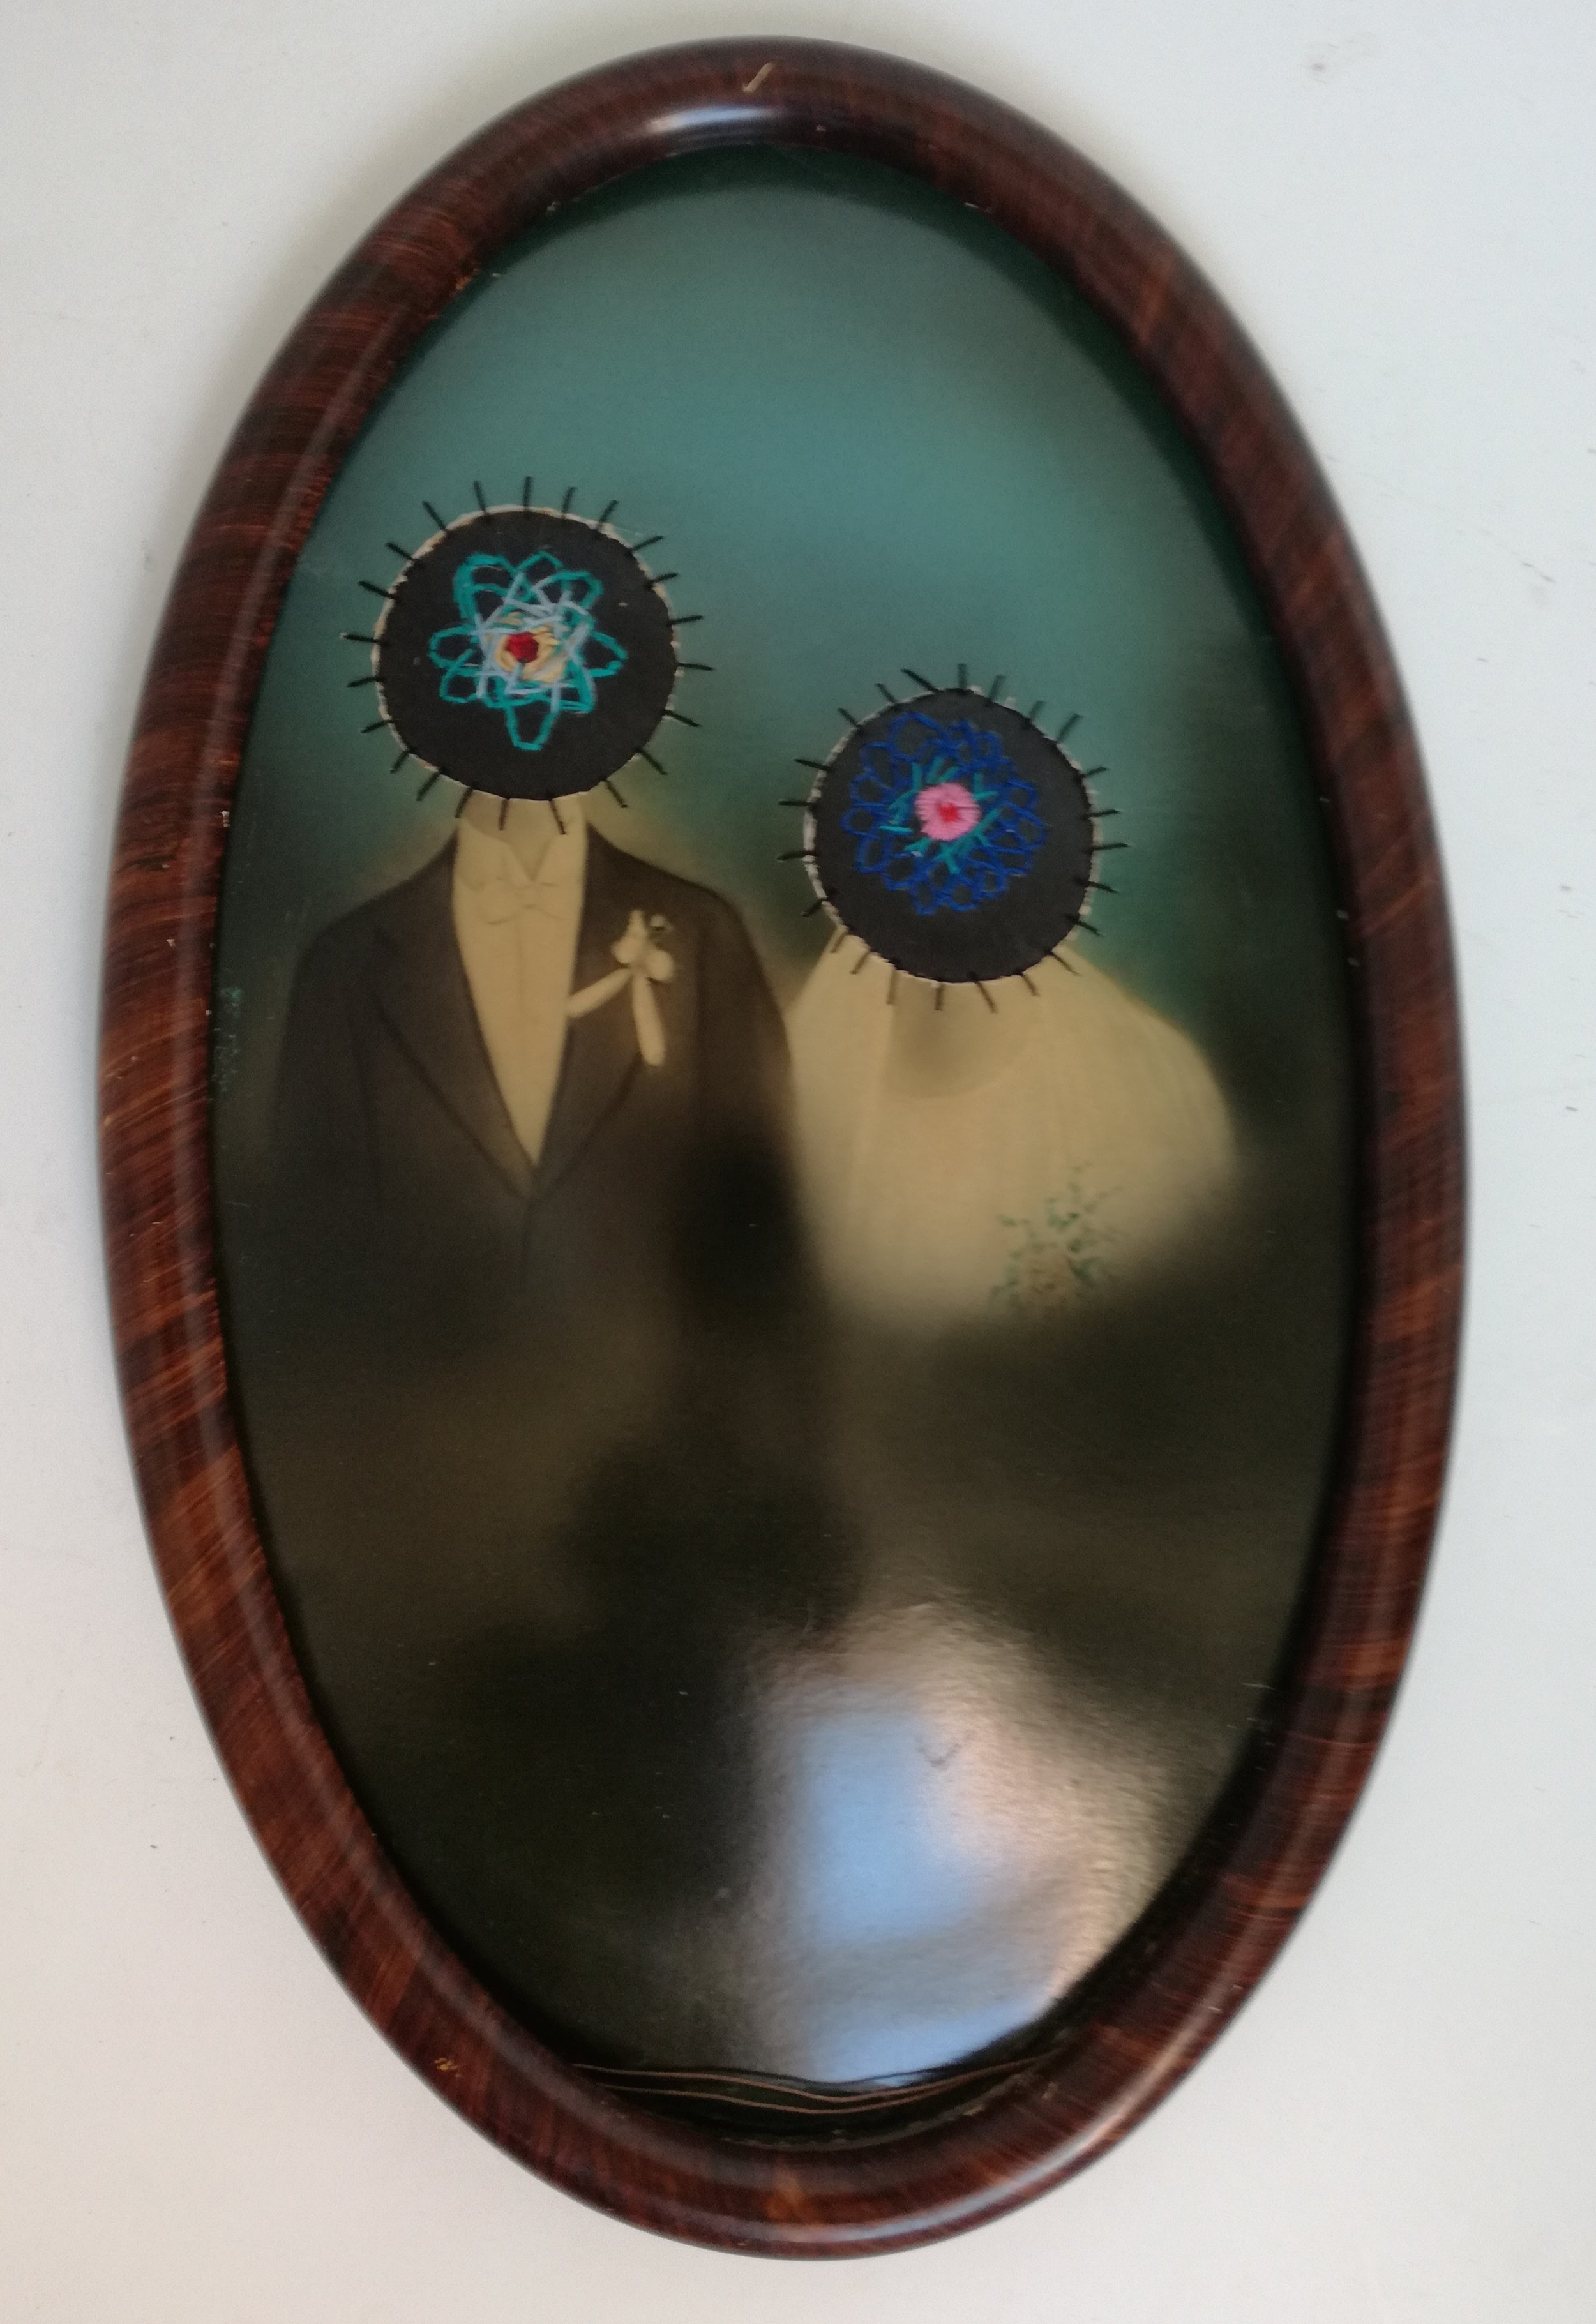 The Atoms Family - Altered Vintage Photograph, Cotton Thread, Rubber530 x 330 mm9800 ZAR